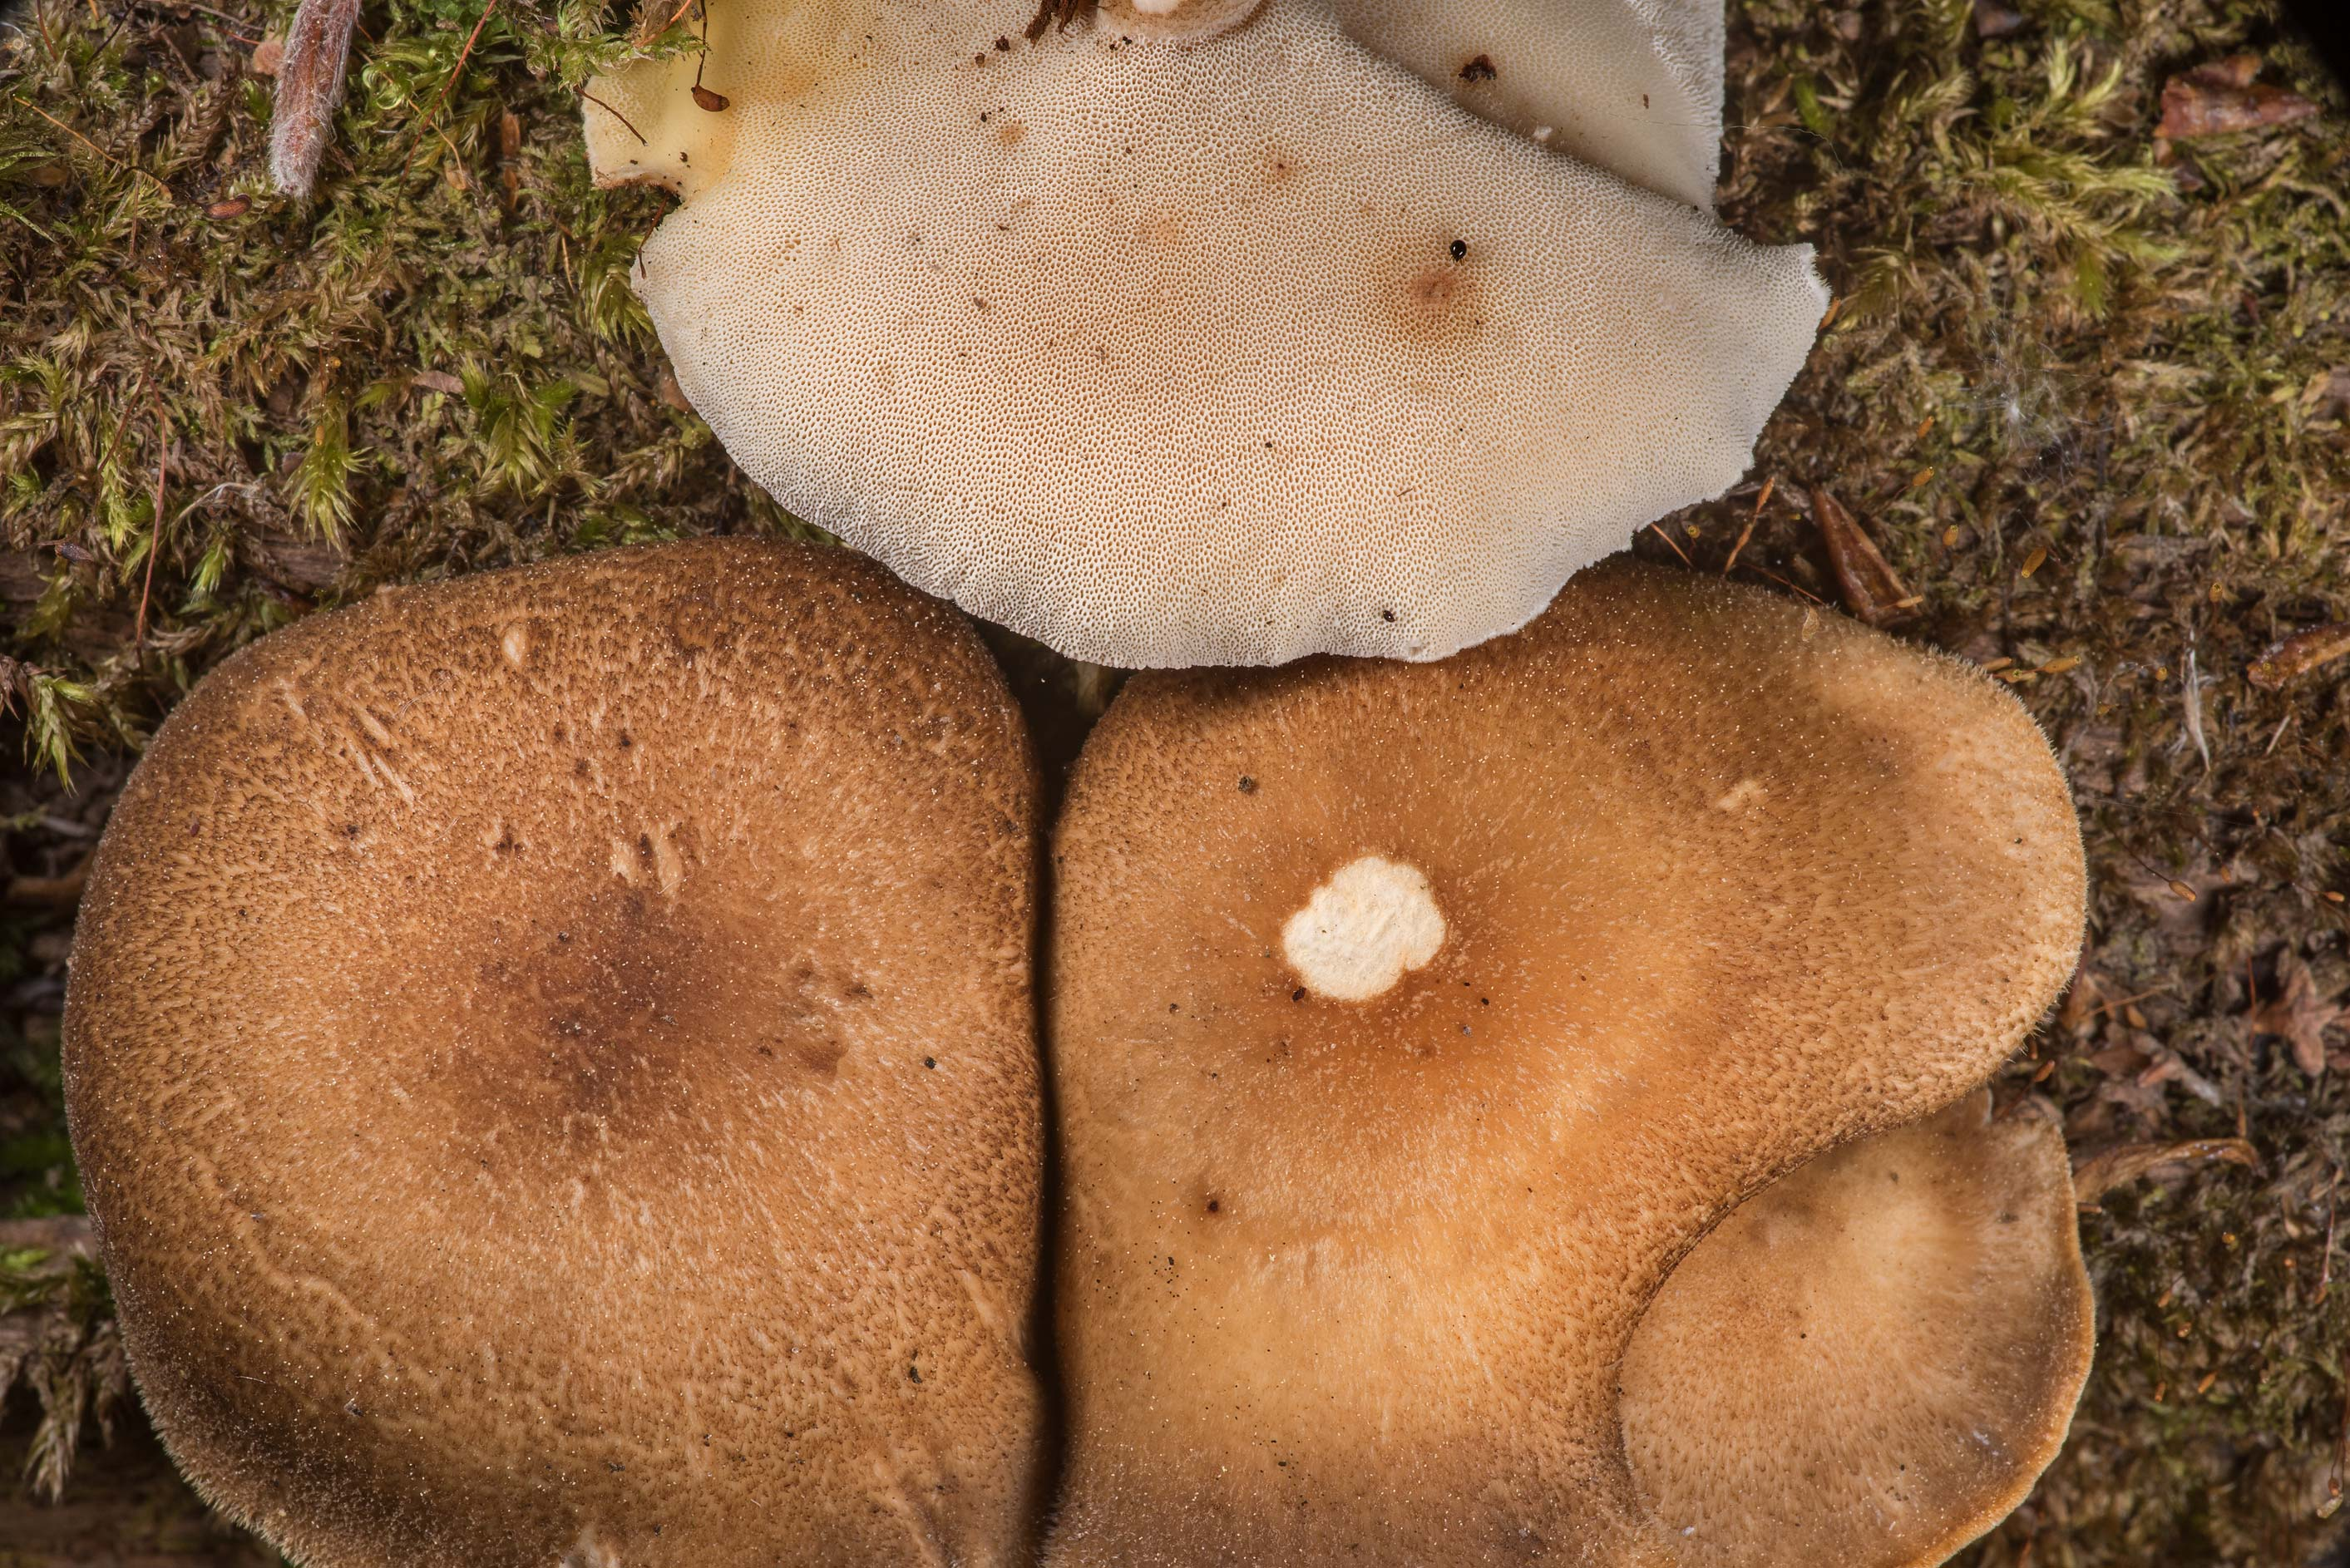 Fringed polypore mushrooms Lentinus substrictus...west from St.Petersburg, Russia